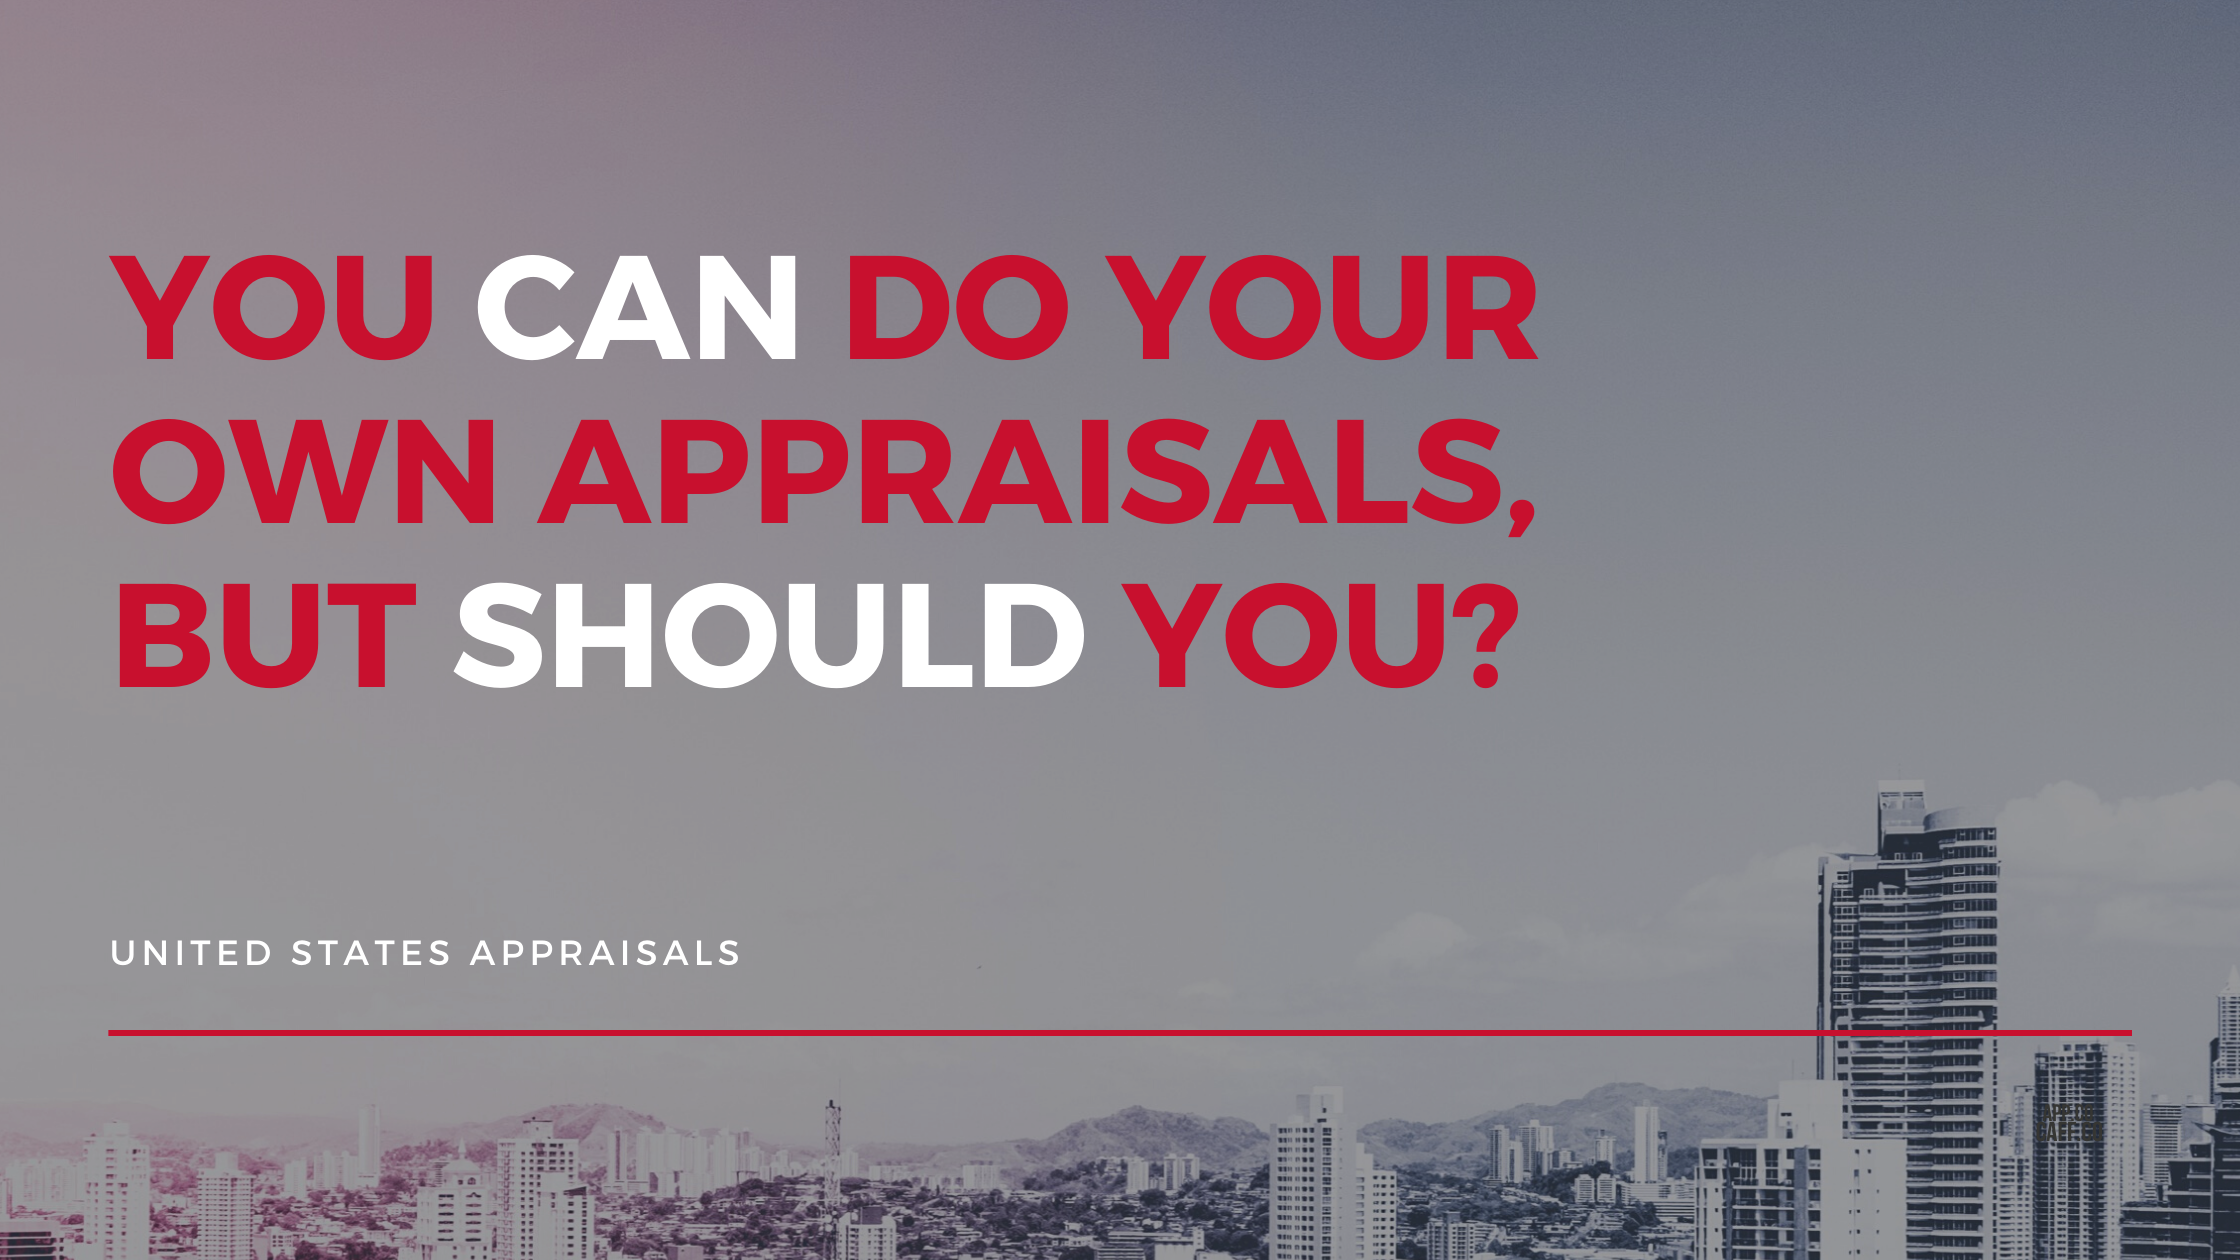 All You Need To Know About Appraisal Management Companies (AMC)